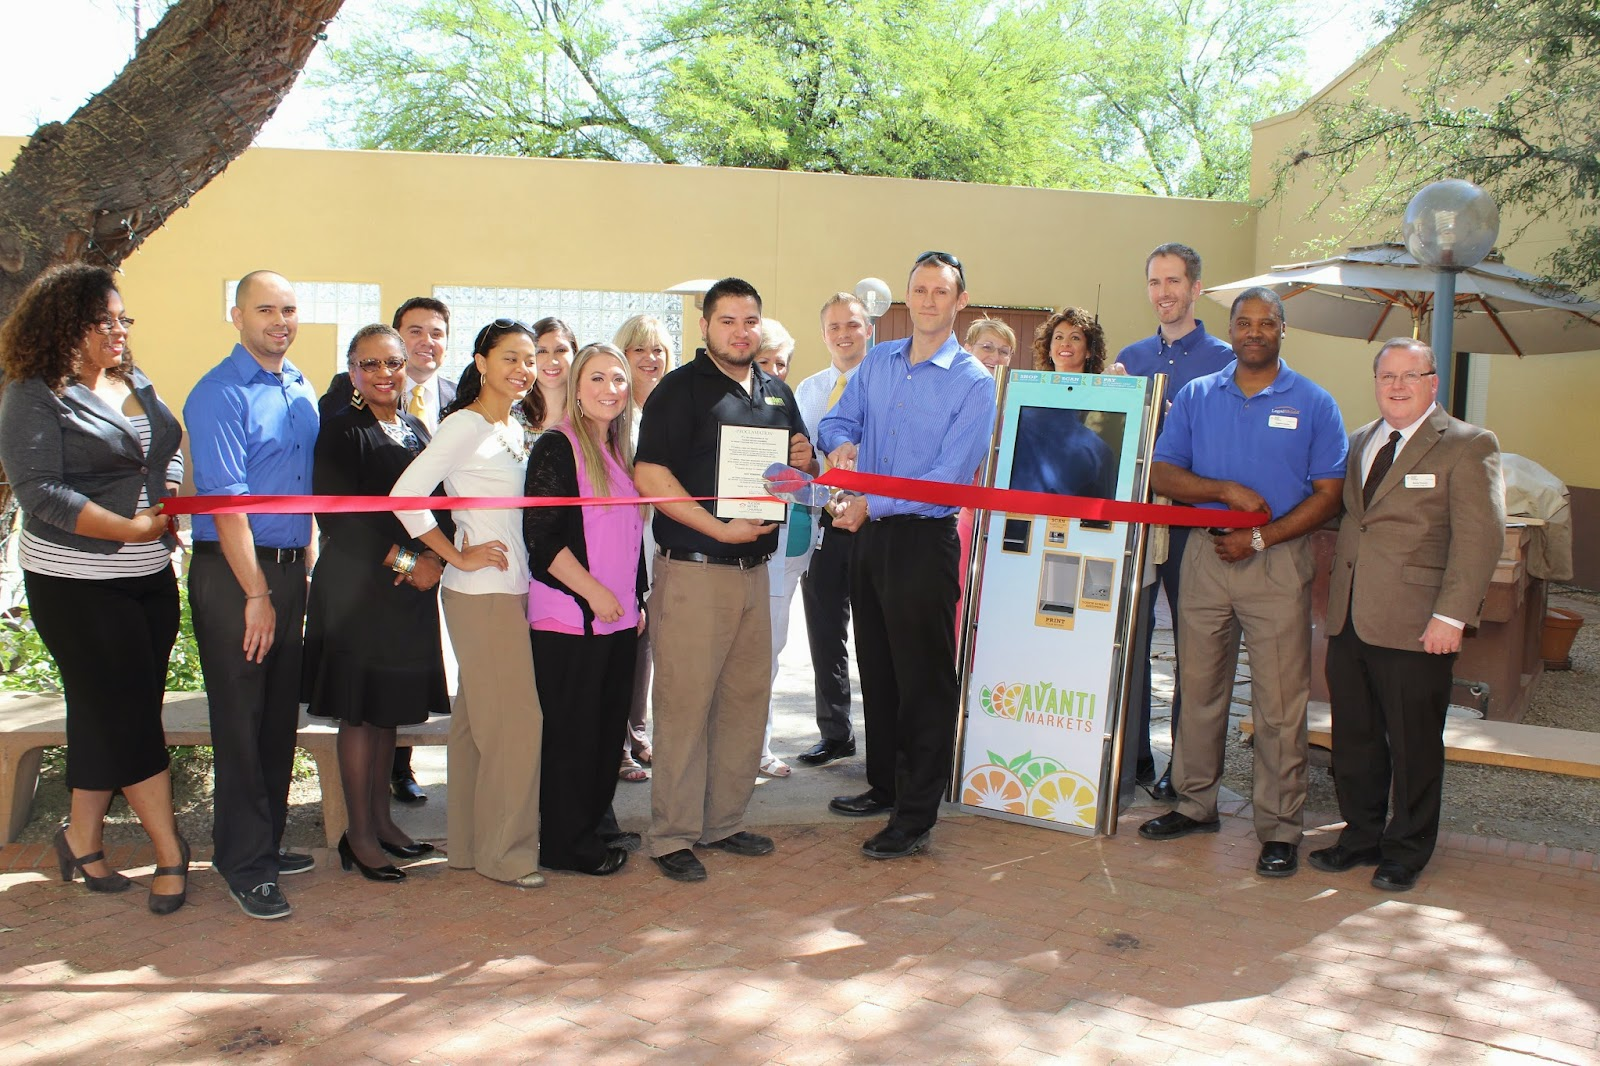 Ace Vending - Ace Vending celebrated the opening of its new Tucson branch.  Ace vending is Arizona's largest privately owned vending company and specializes in office coffee supplies and Avanti Micromarkets.